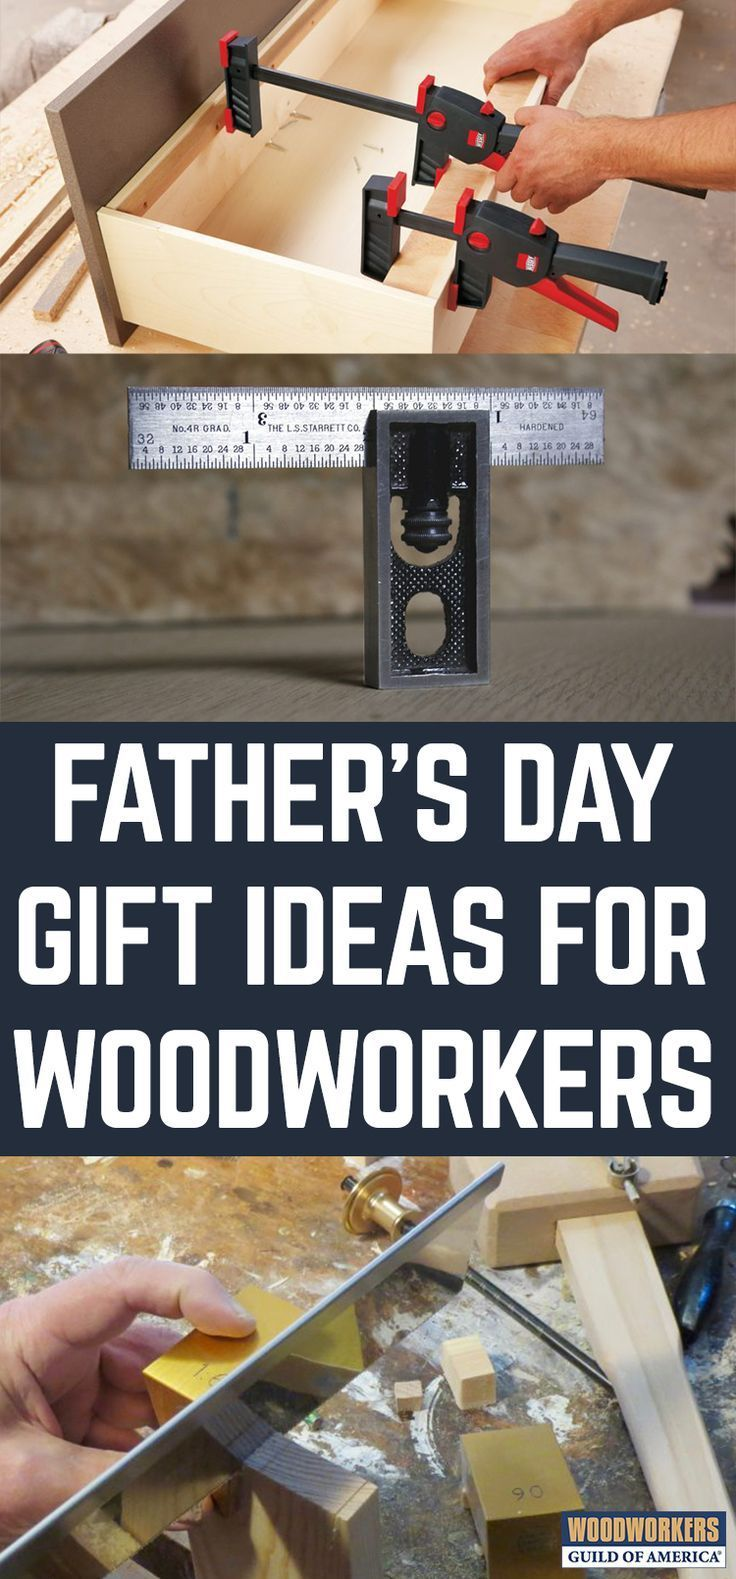 father's day gift ideas | fun woodworking ideas | pinterest | corner